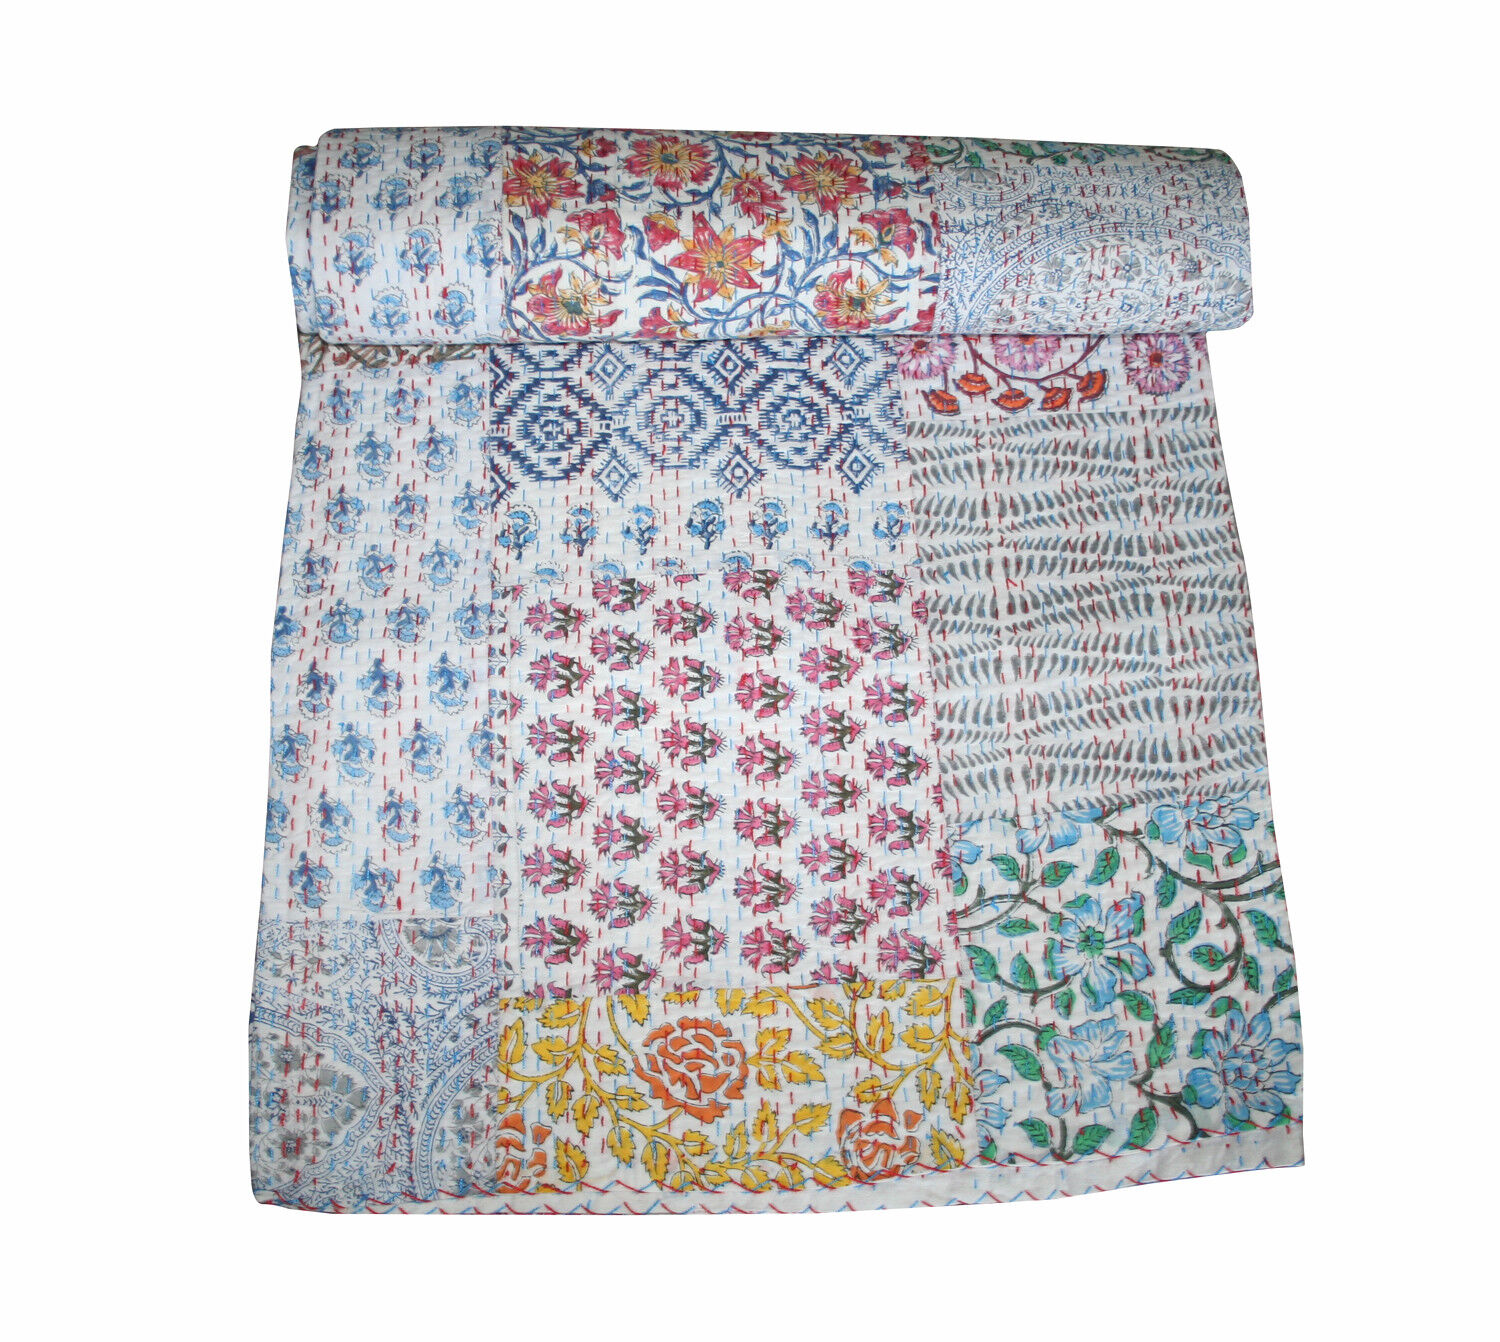 Multi Flower Hand Print Kantha Quilt Patchwork Throw Blanket Bedspread King Size